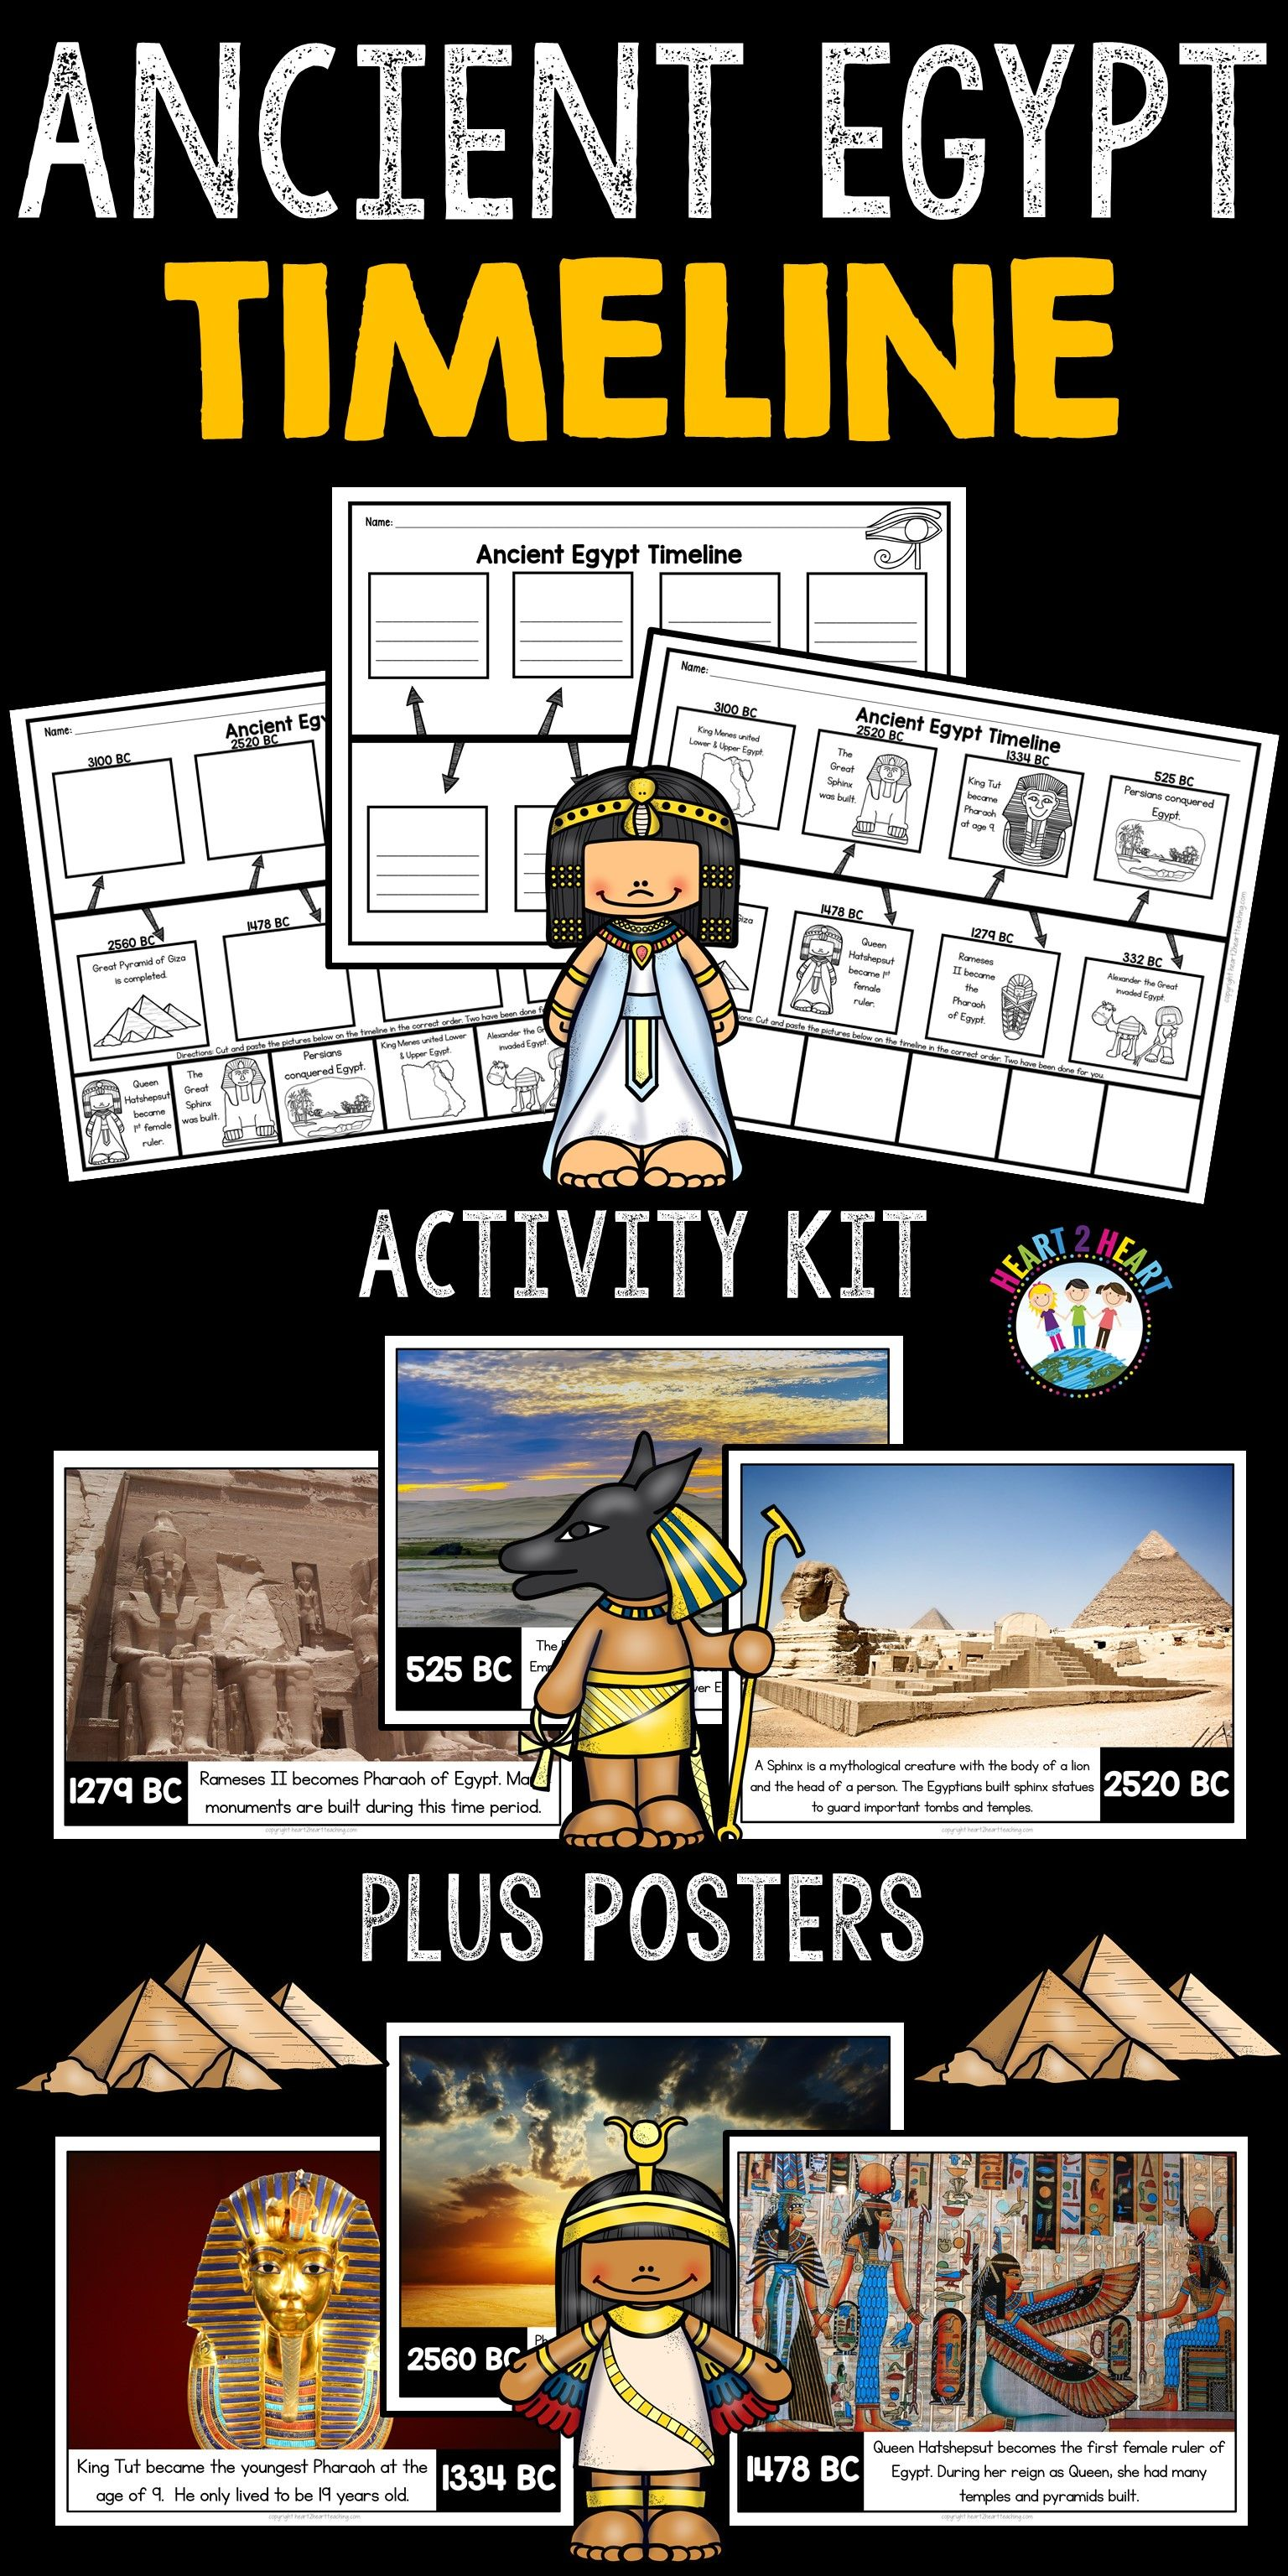 Ancient Egypt Timeline And Bulletin Board Kit